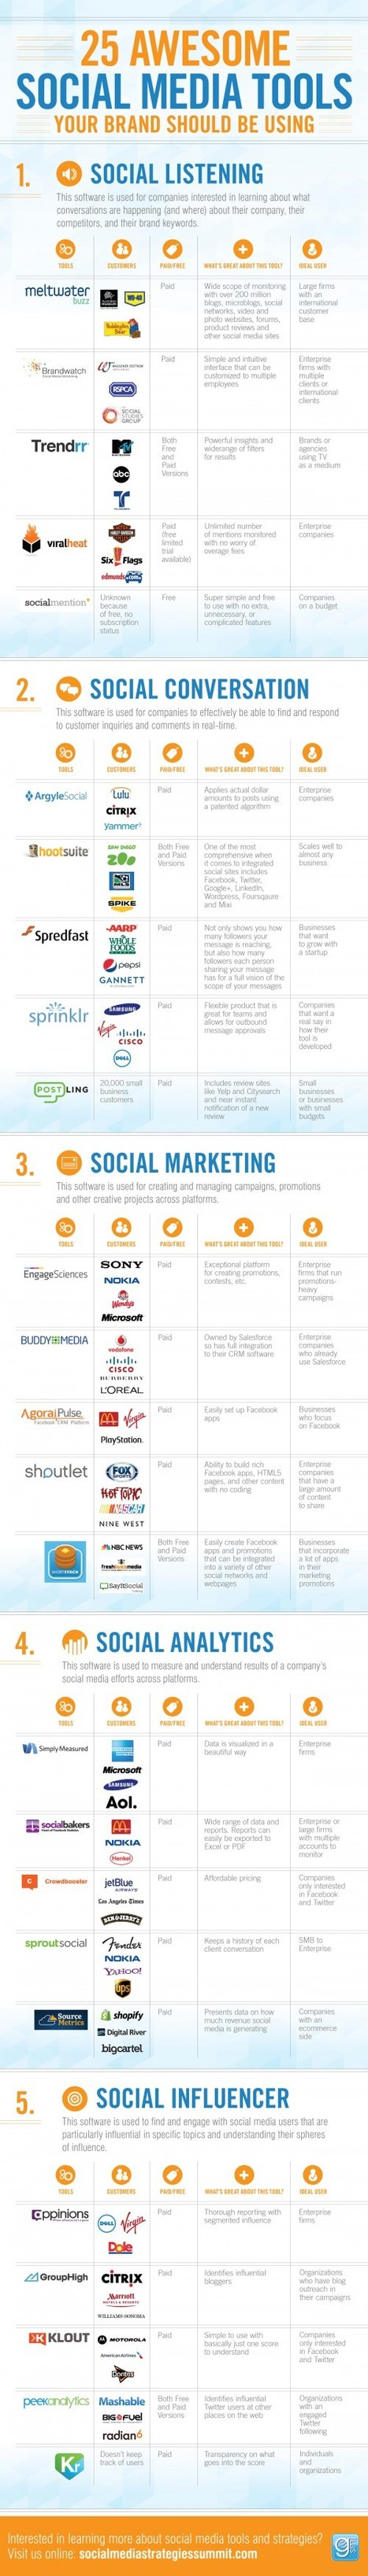 25 Great Social Media Tools - Infographic | DV8 Digital Marketing Tips and Insight | Scoop.it